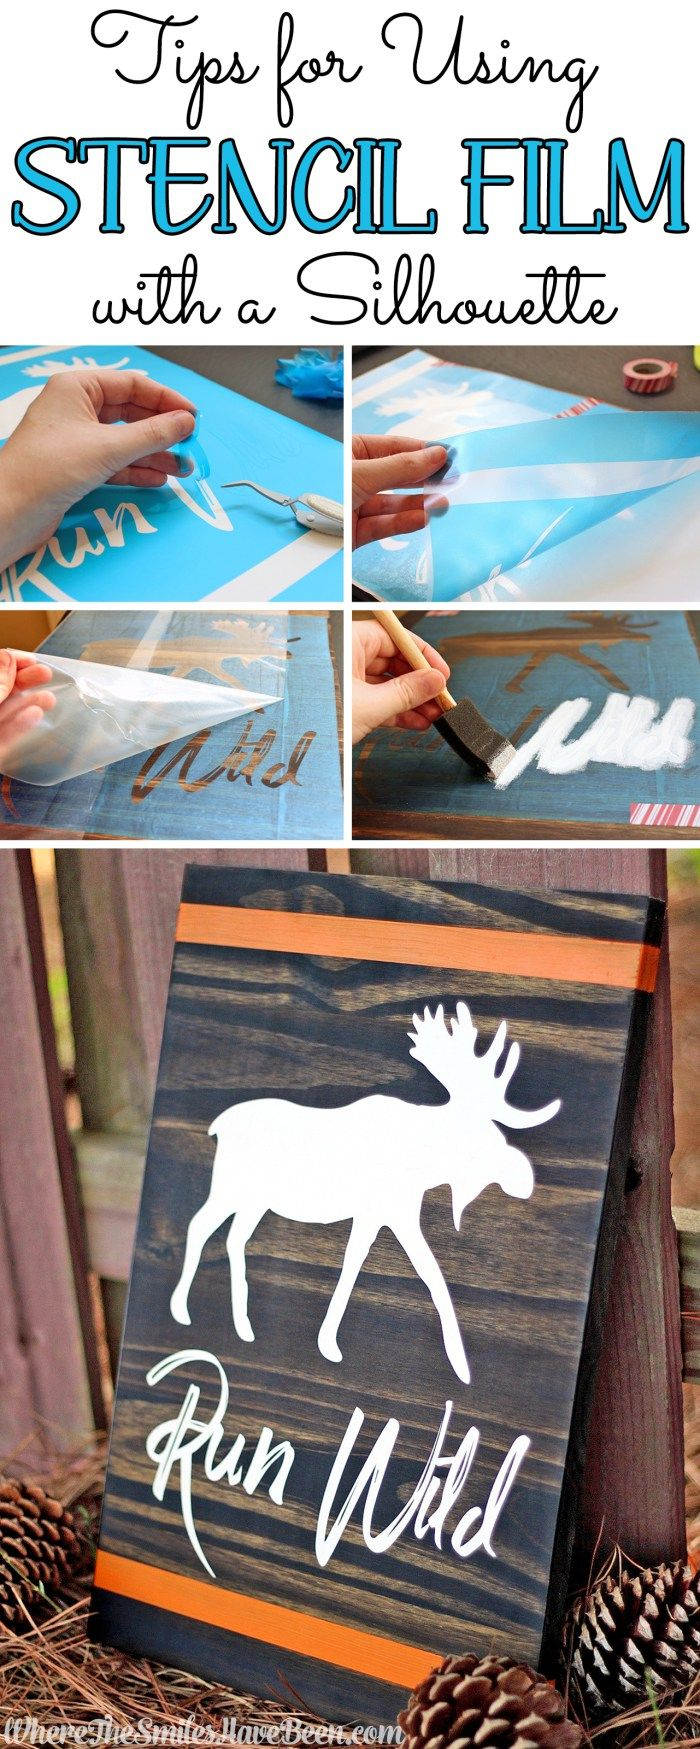 Tips for Using Stencil Film with a Silhouette | Where The Smiles Have Been